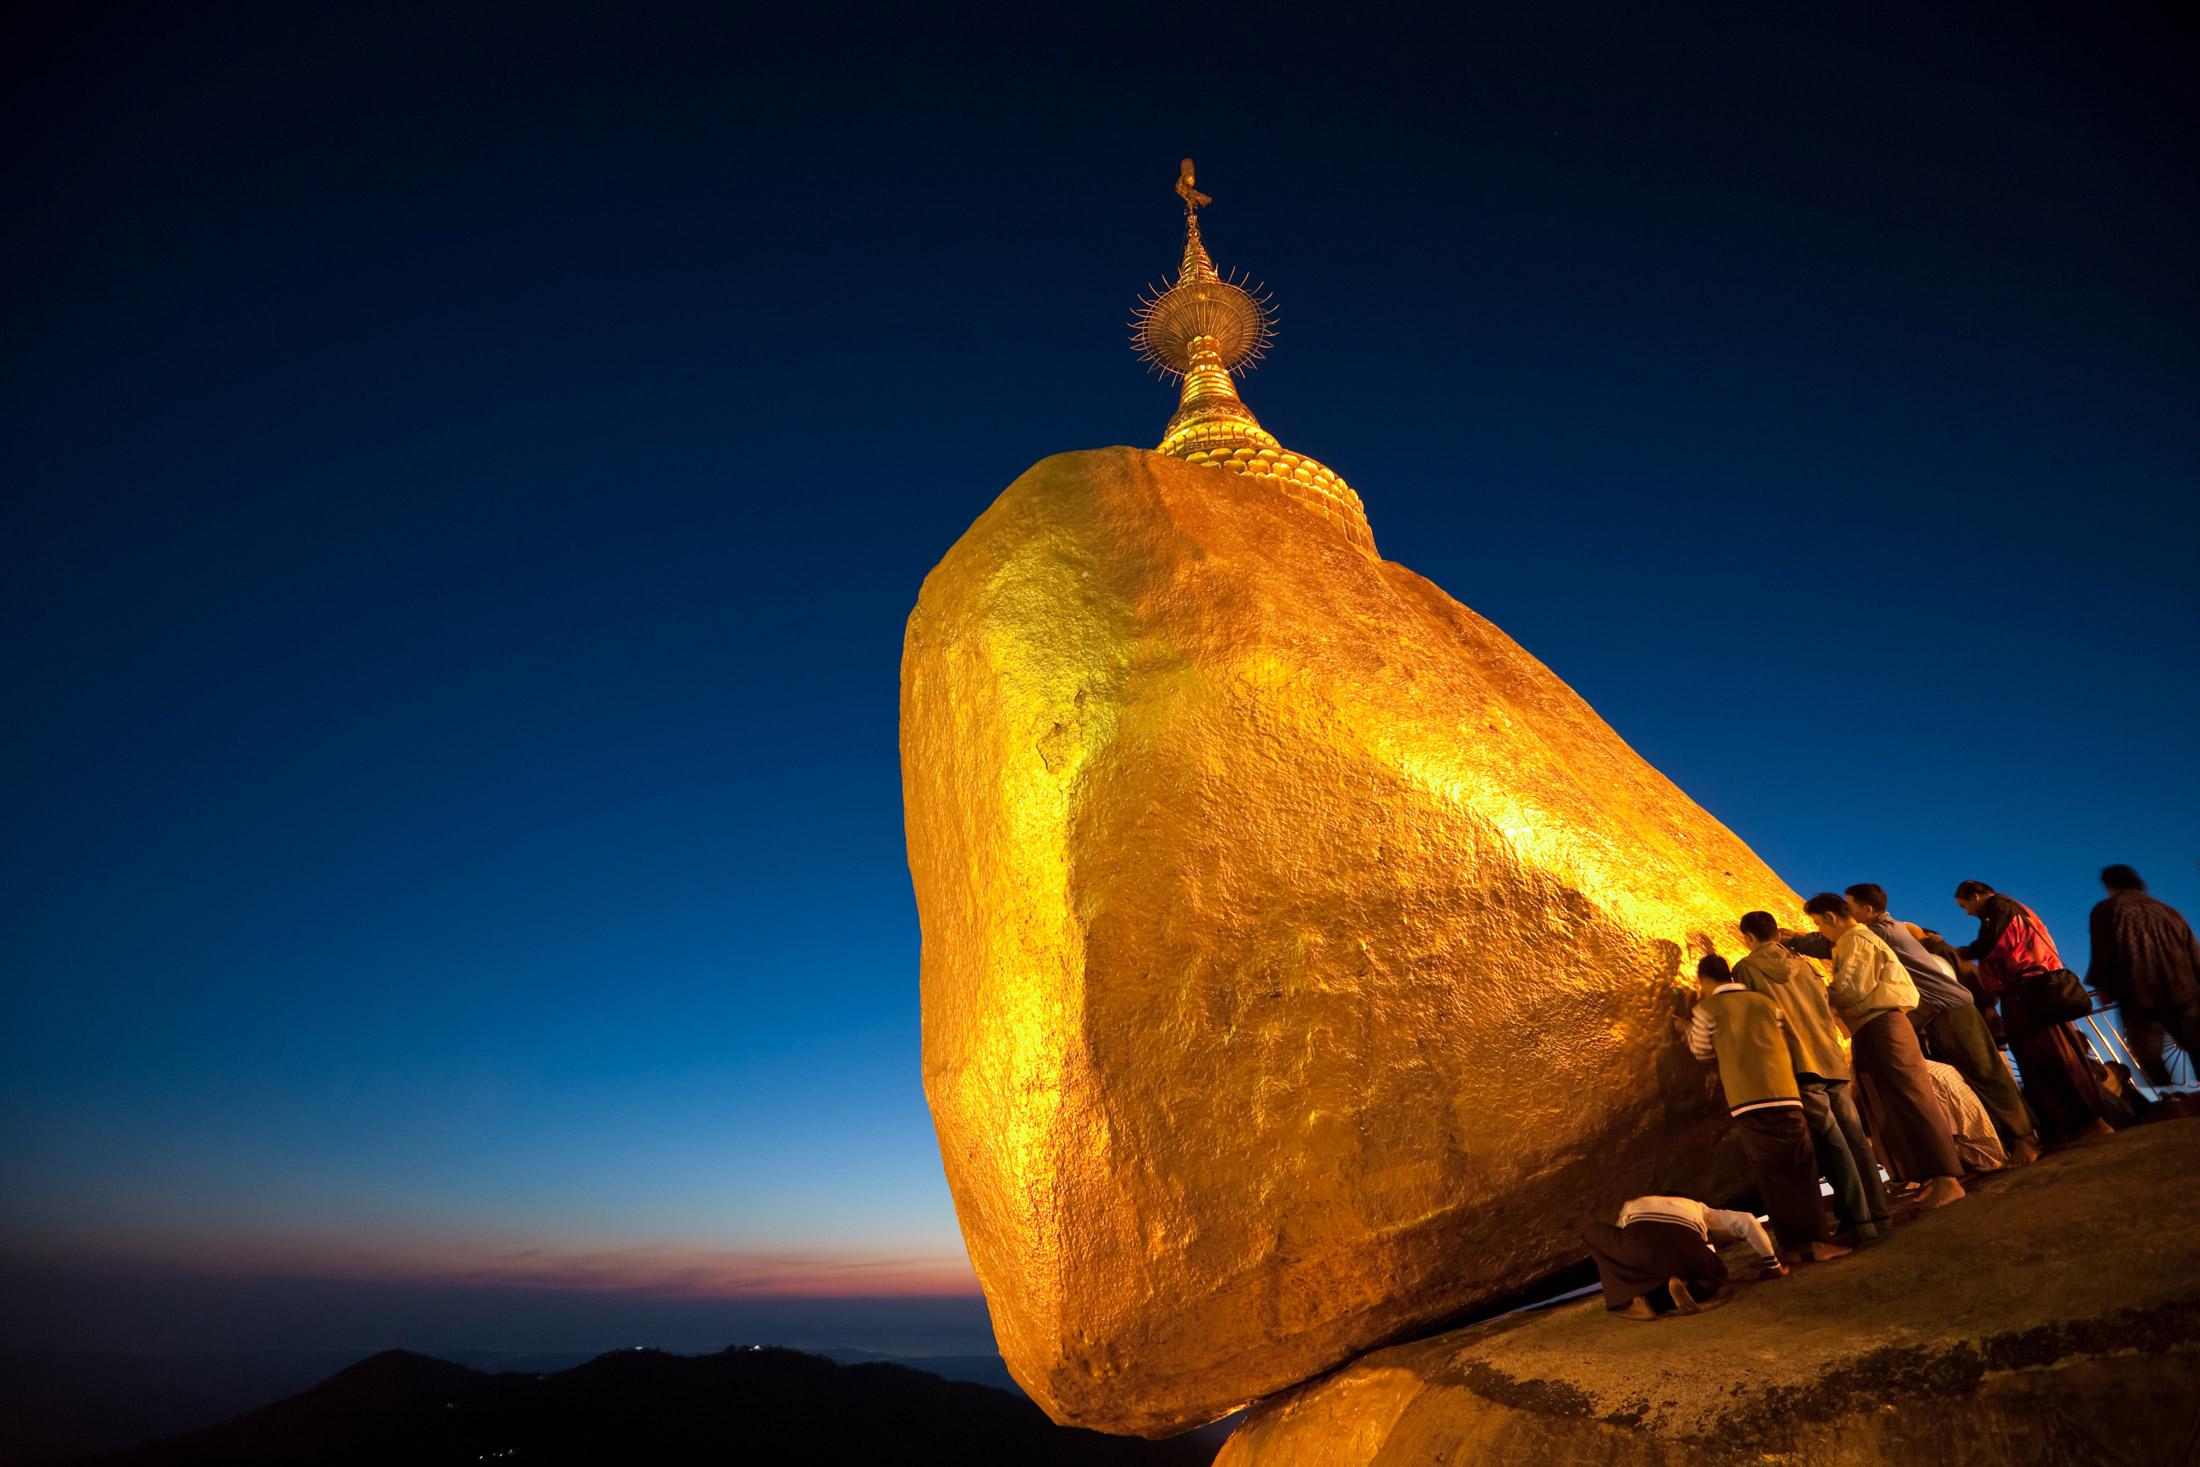 The best essay writer place to visit in myanmar